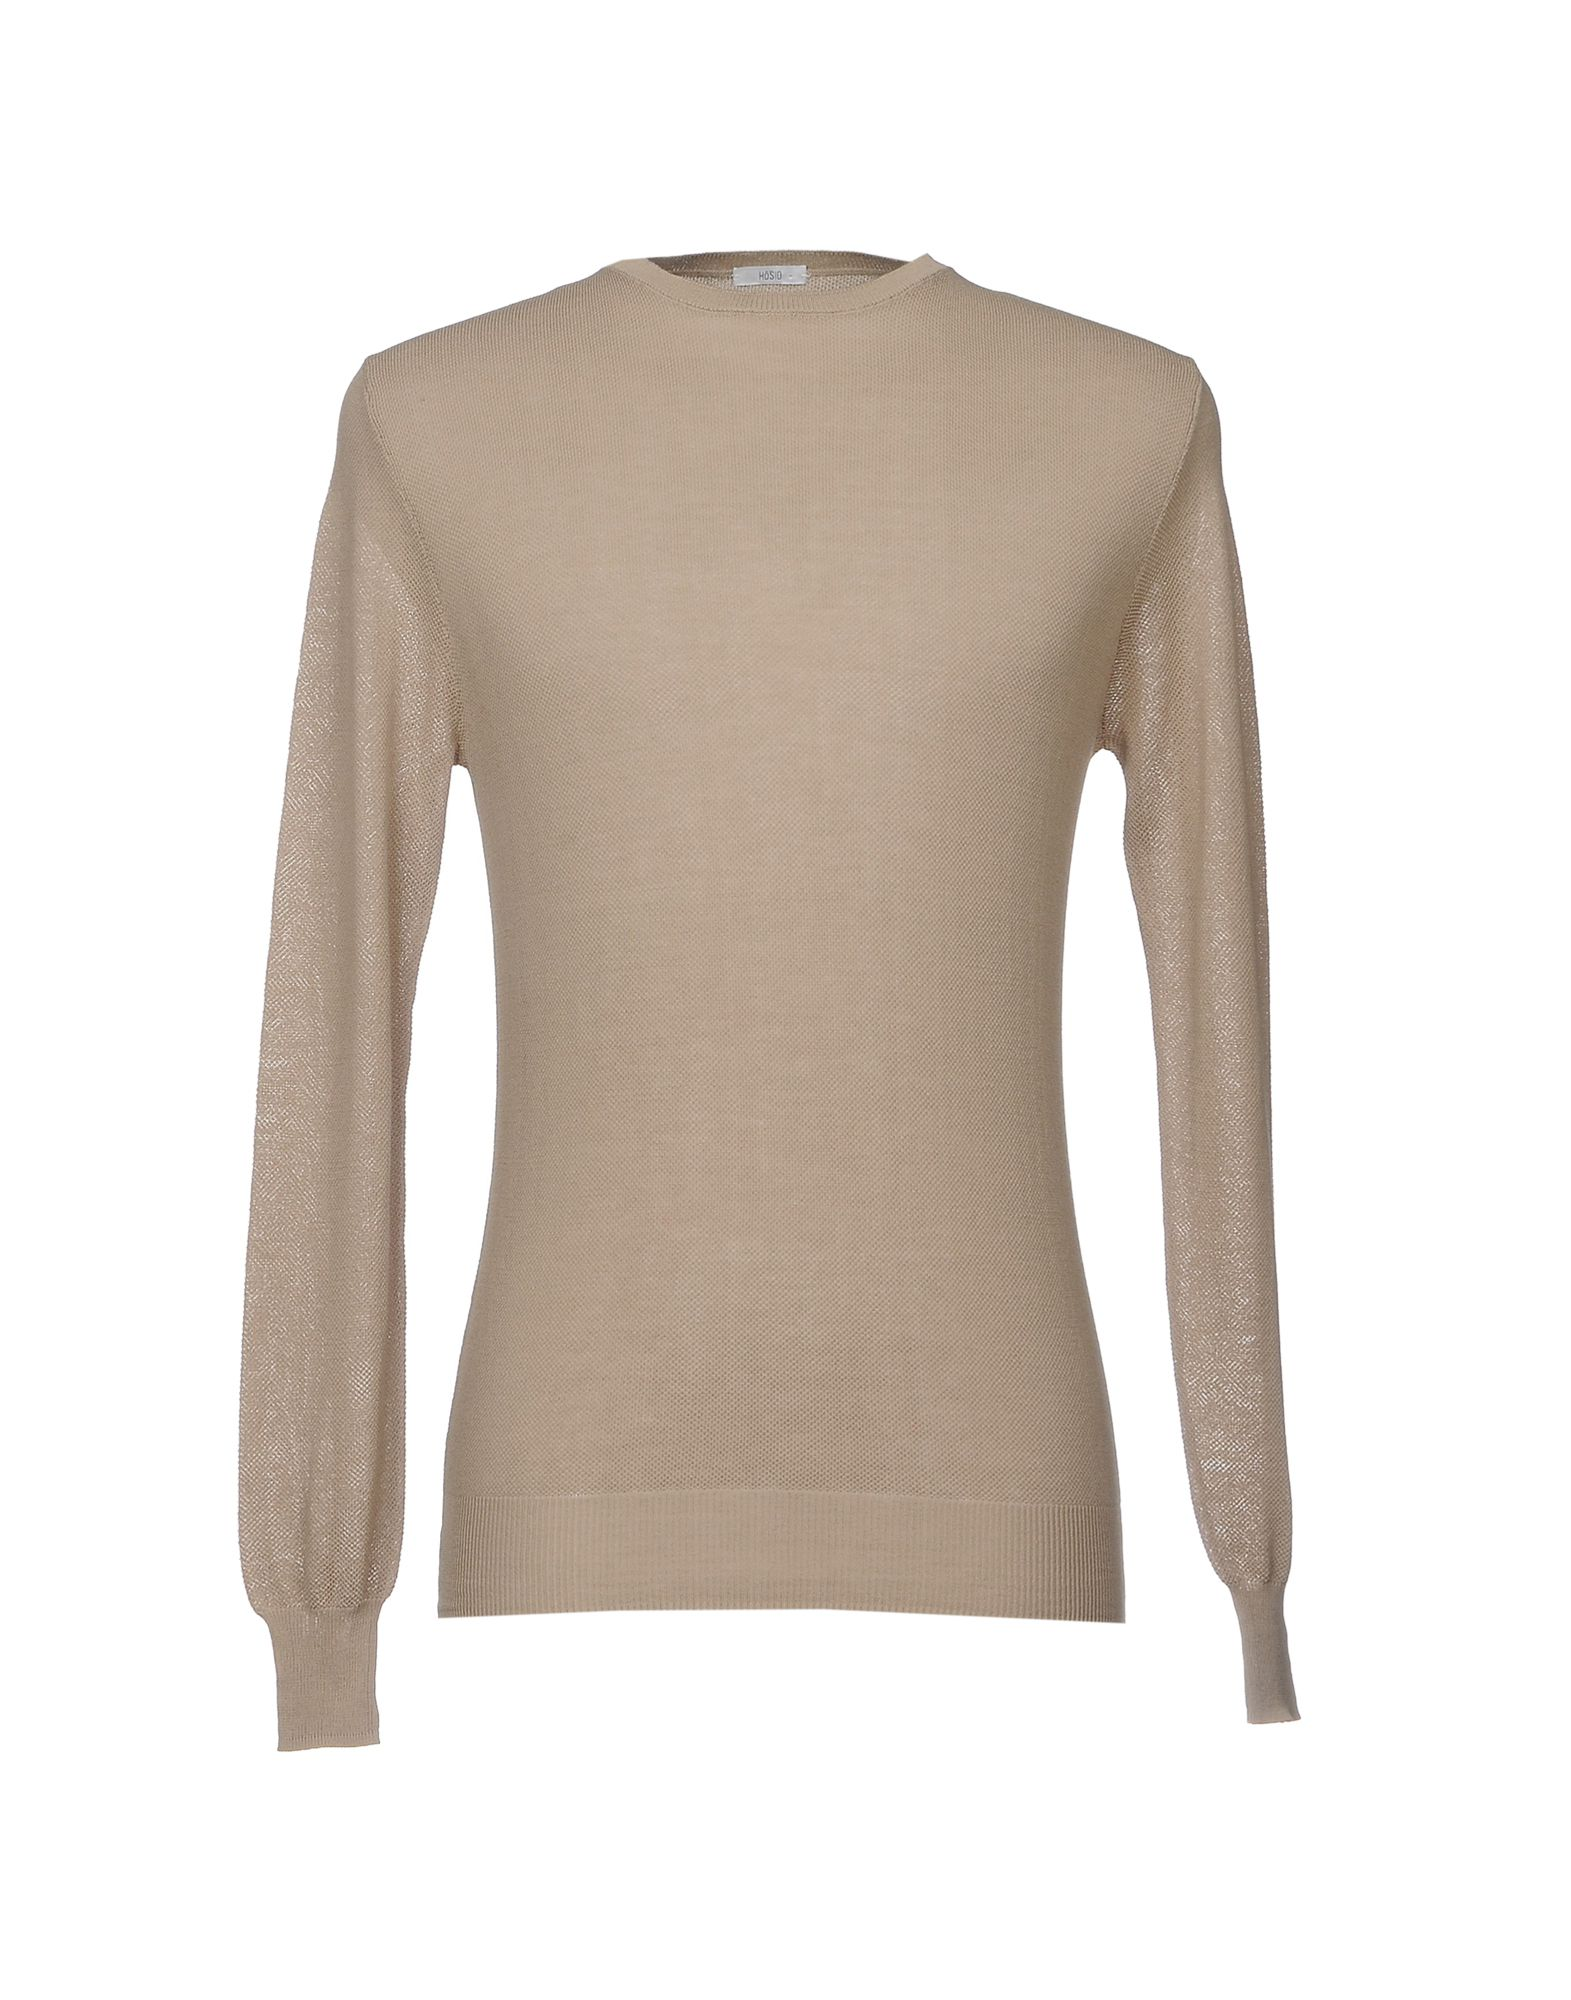 HoSIO Sweaters - Item 39822902